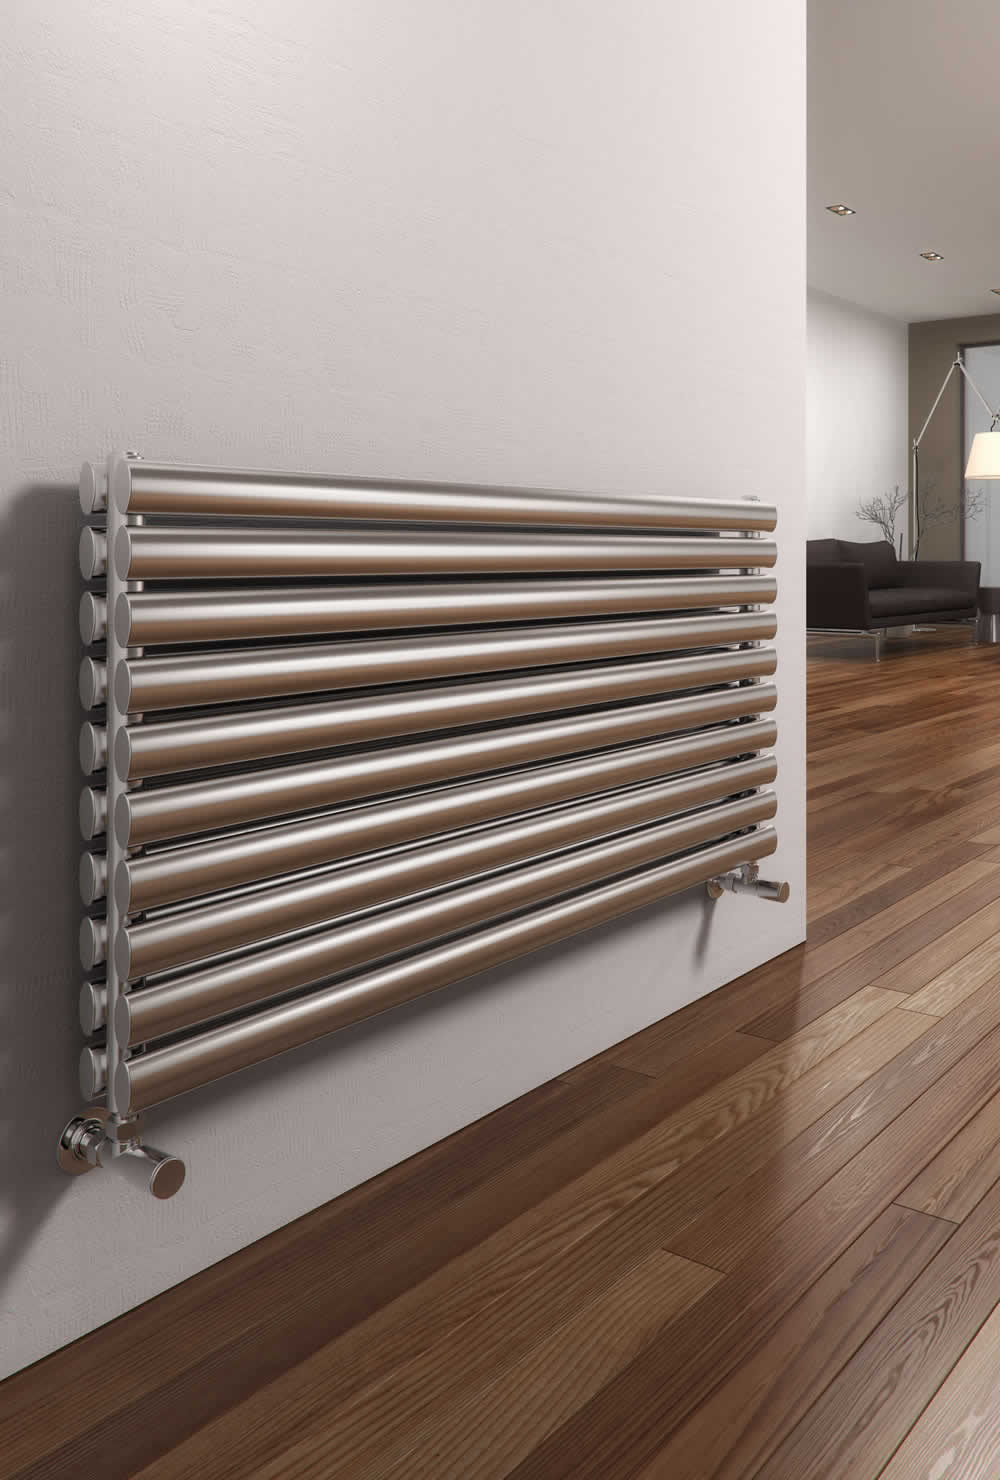 ARTENA 590 x 800 BRUSHED DBL STAINLESS STEEL RAD